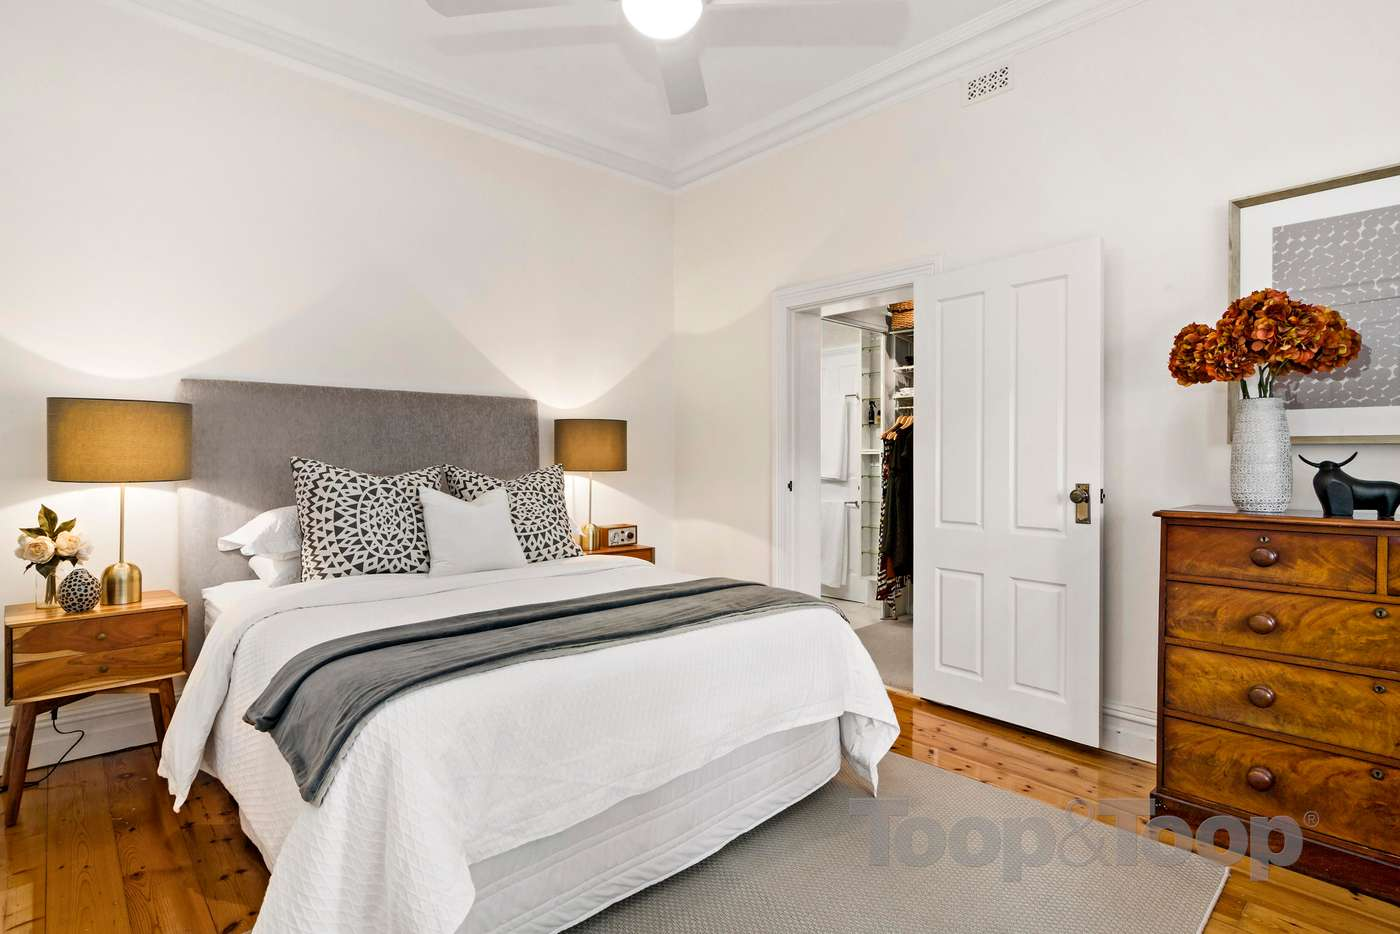 Fifth view of Homely house listing, 6 Sunnymeade Avenue, Fullarton SA 5063